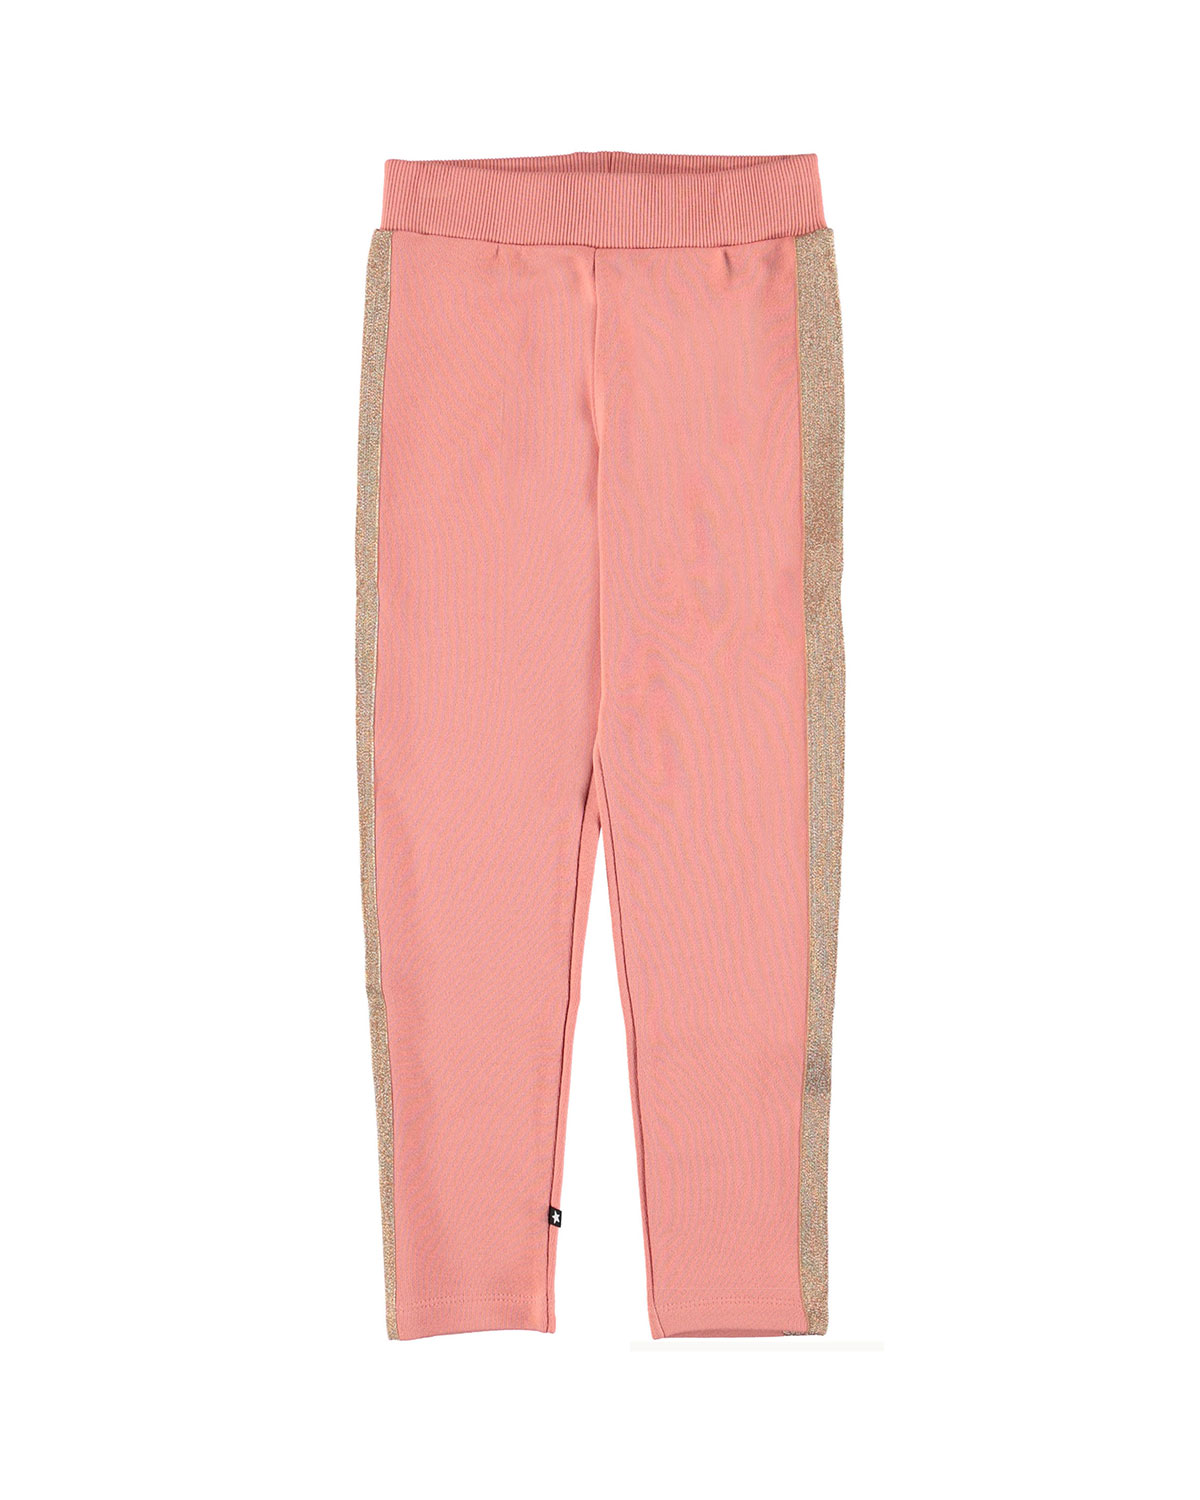 Molo ANTONIA SHIMMER-TRIM SWEATPANTS